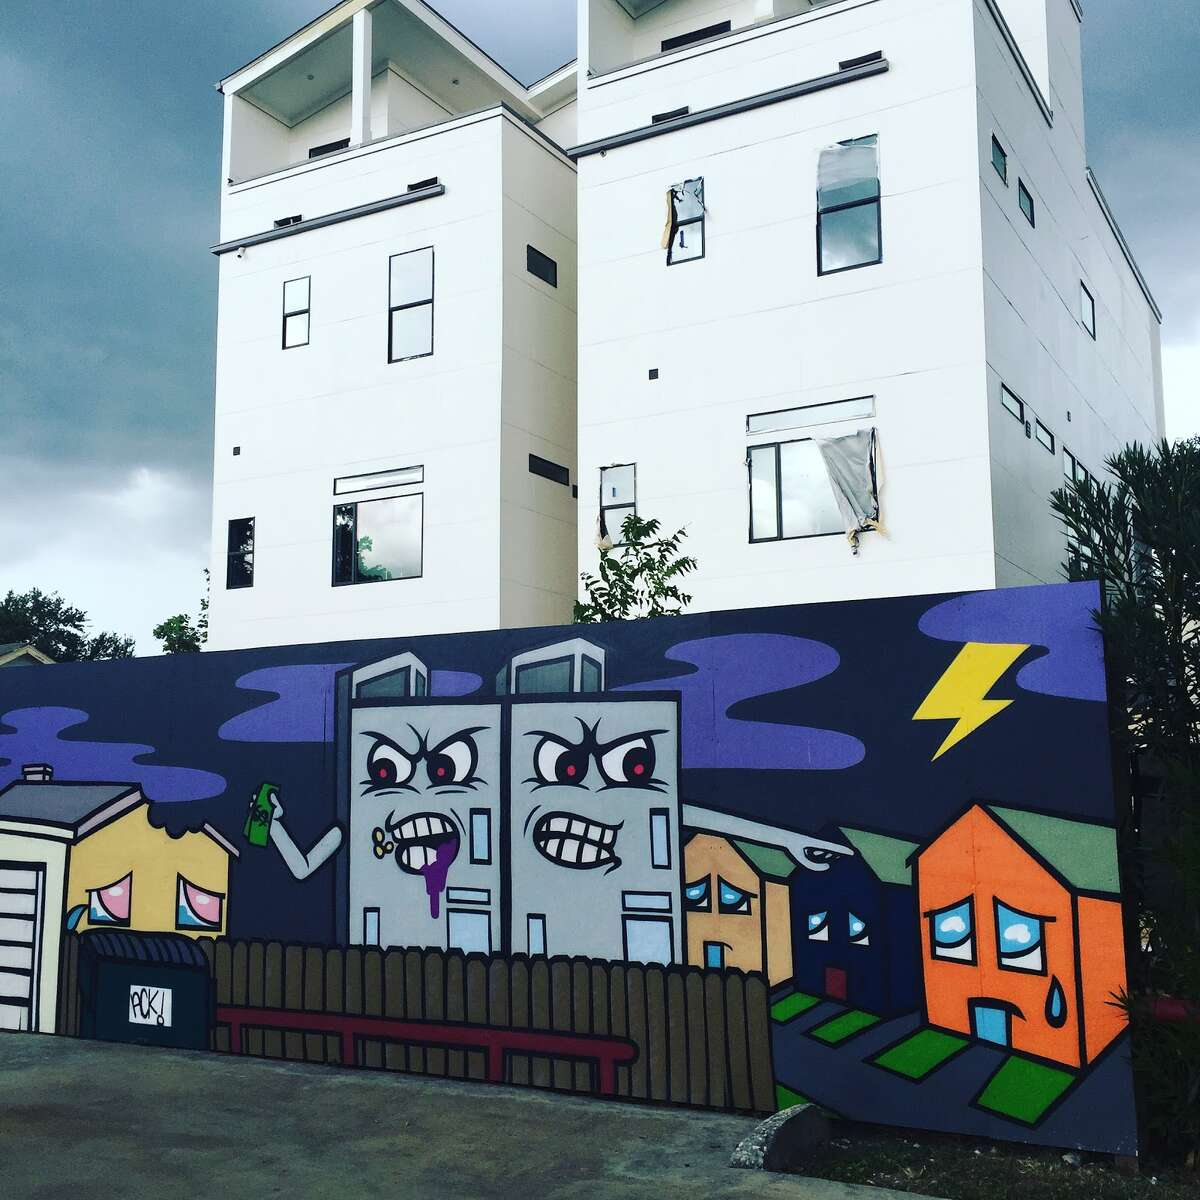 The fastest gentrified-zip codes since 2000 Houston artist Ackzilla targets Houston's gentrification with this monster-inspired mural outside of the Station Museum in Midtown.Scroll ahead to see which neighborhoods rank as the most gentrified in America since 2000 according to Rent Cafe up ahead.